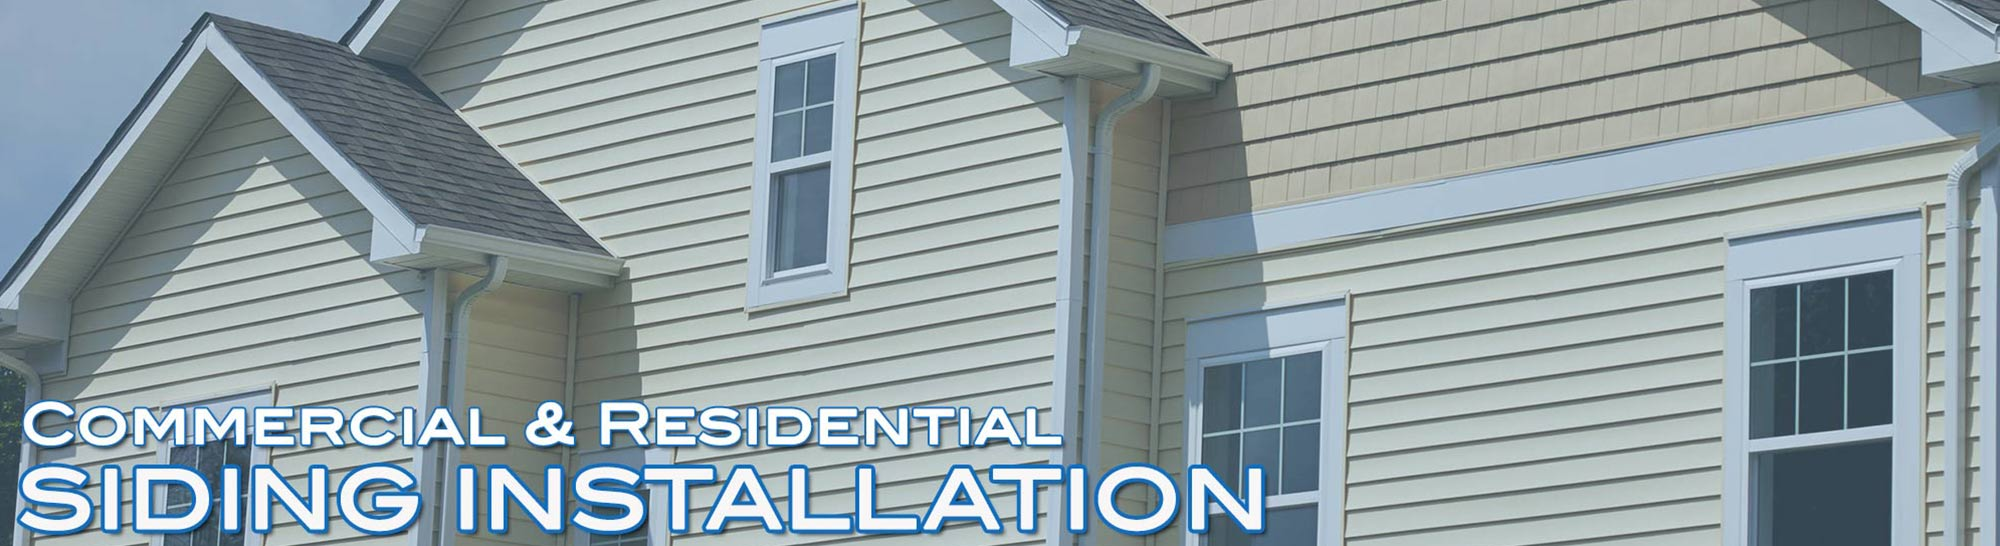 commercial and residential siding installation Houston